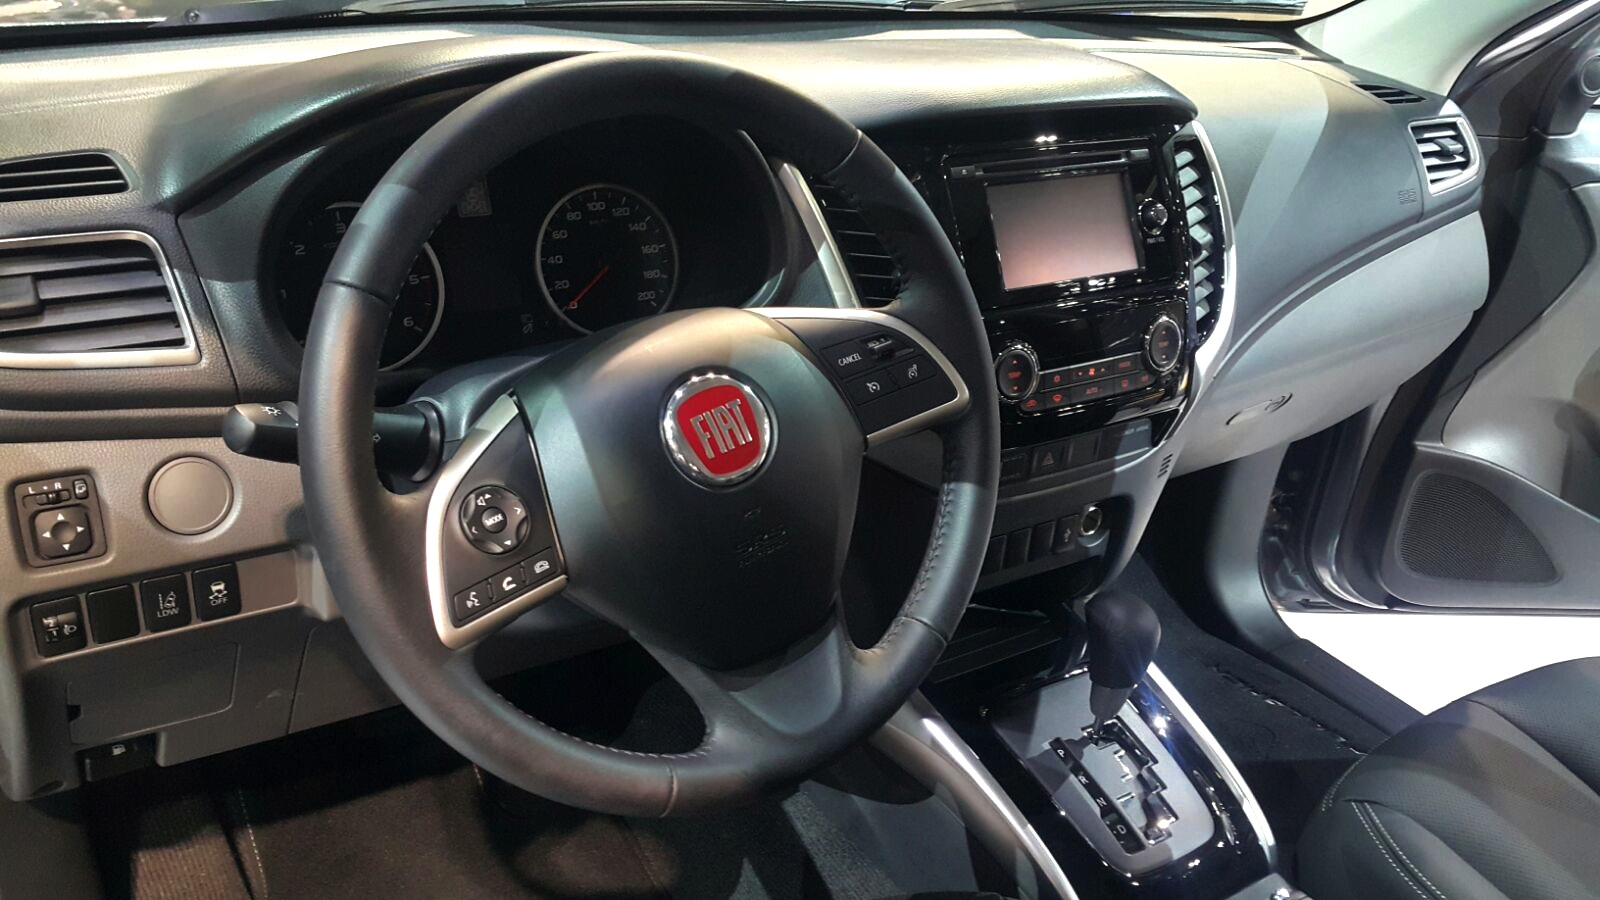 awesome-design-of-the-silver-accent-of-the-dash-added-with-black-steering-wheel-ideas-of-the-fiat-fullback-2016-interior